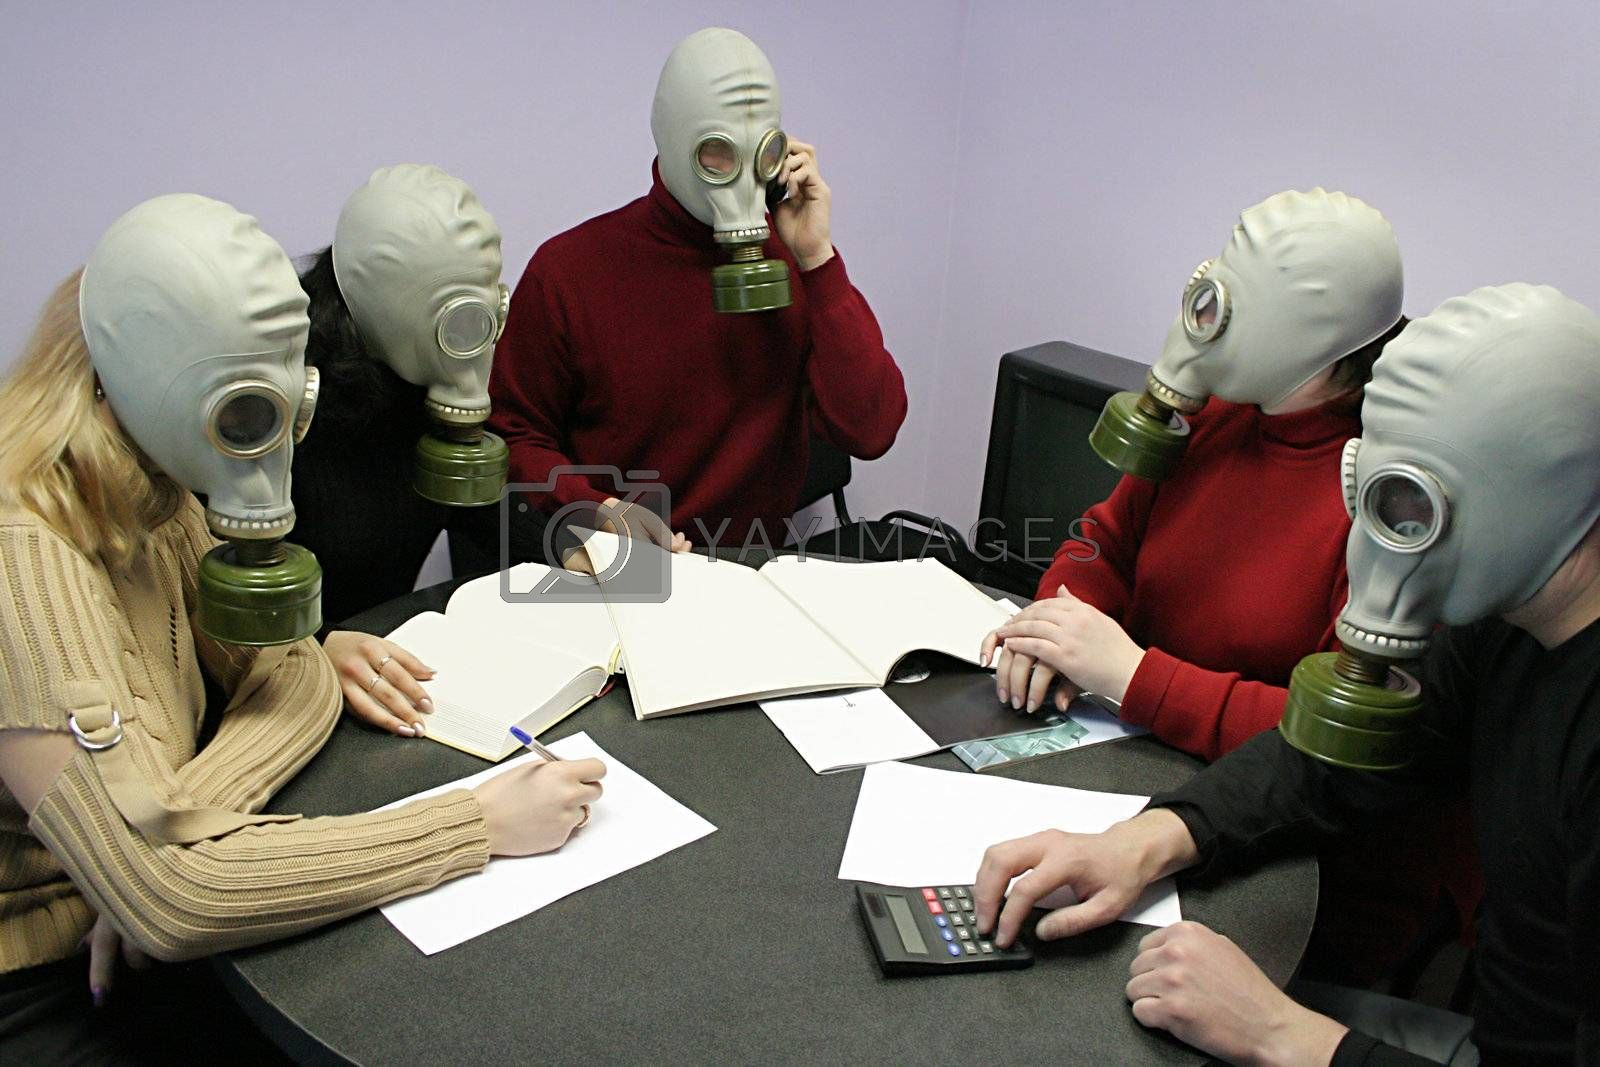 Industrial conference in gas masks behind a table